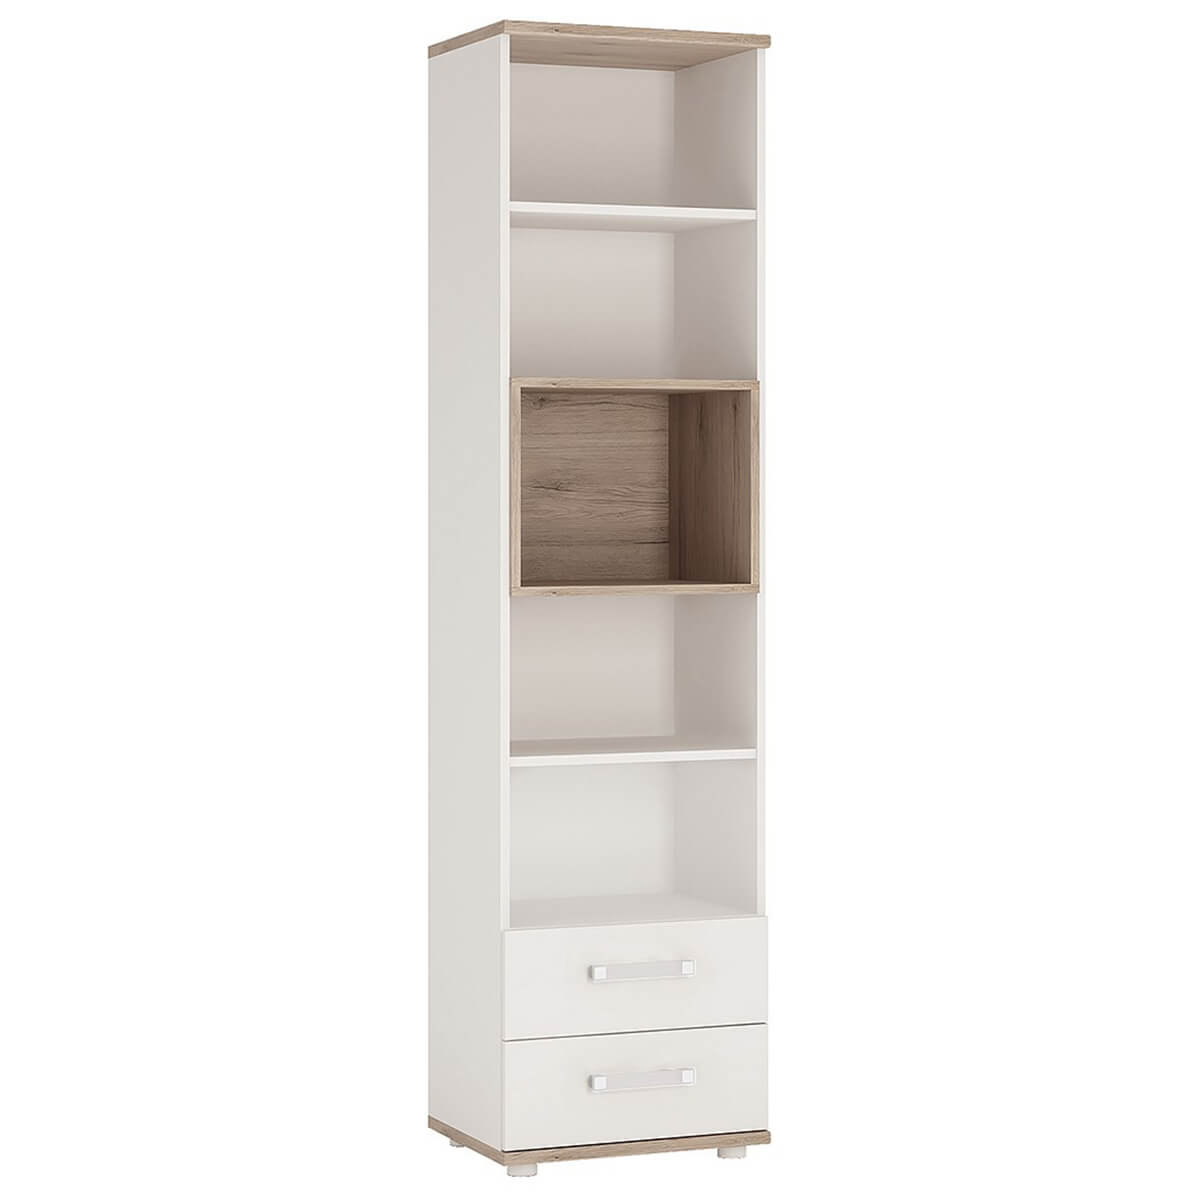 iKids Tall Bookcase 2 Drawer with Opalino Coloured Handles